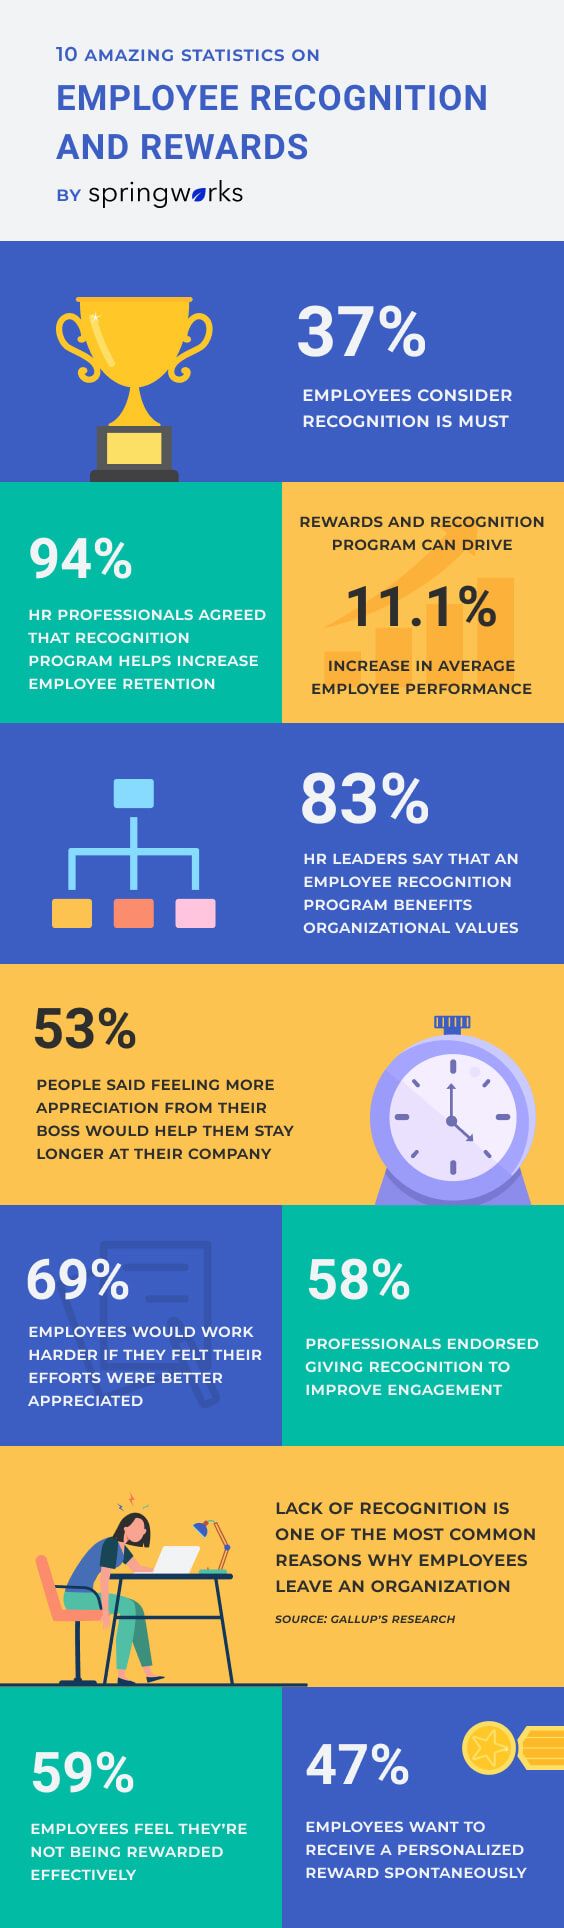 Statistics on Employee Recognition and Rewards infographic